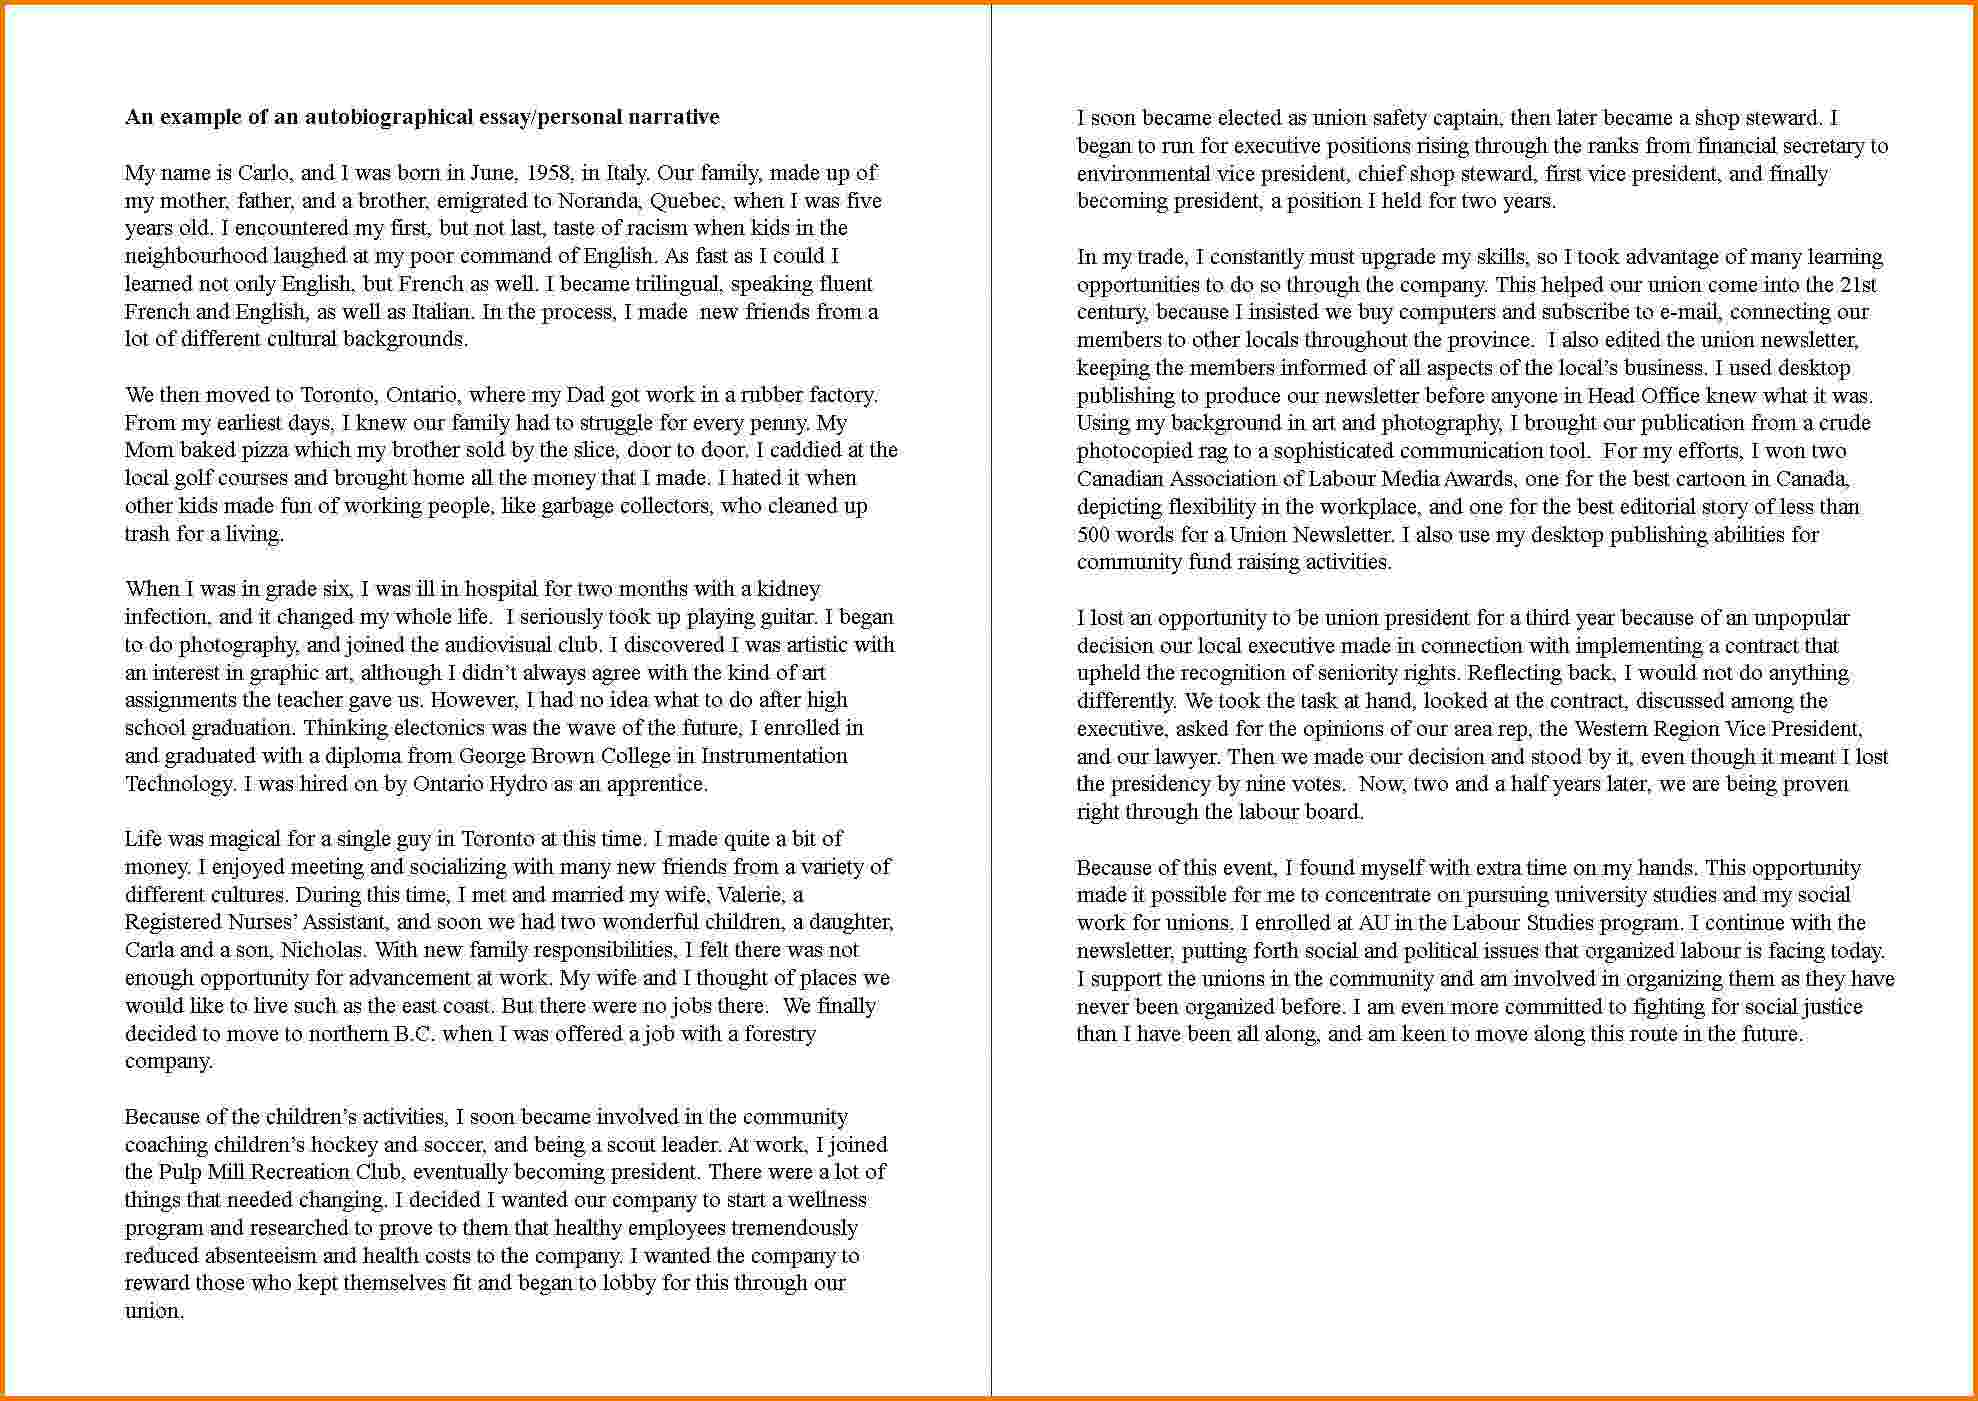 004 Essay Example How To Write An Autobiography Incredible Autobiographical For Graduate School A Job Full